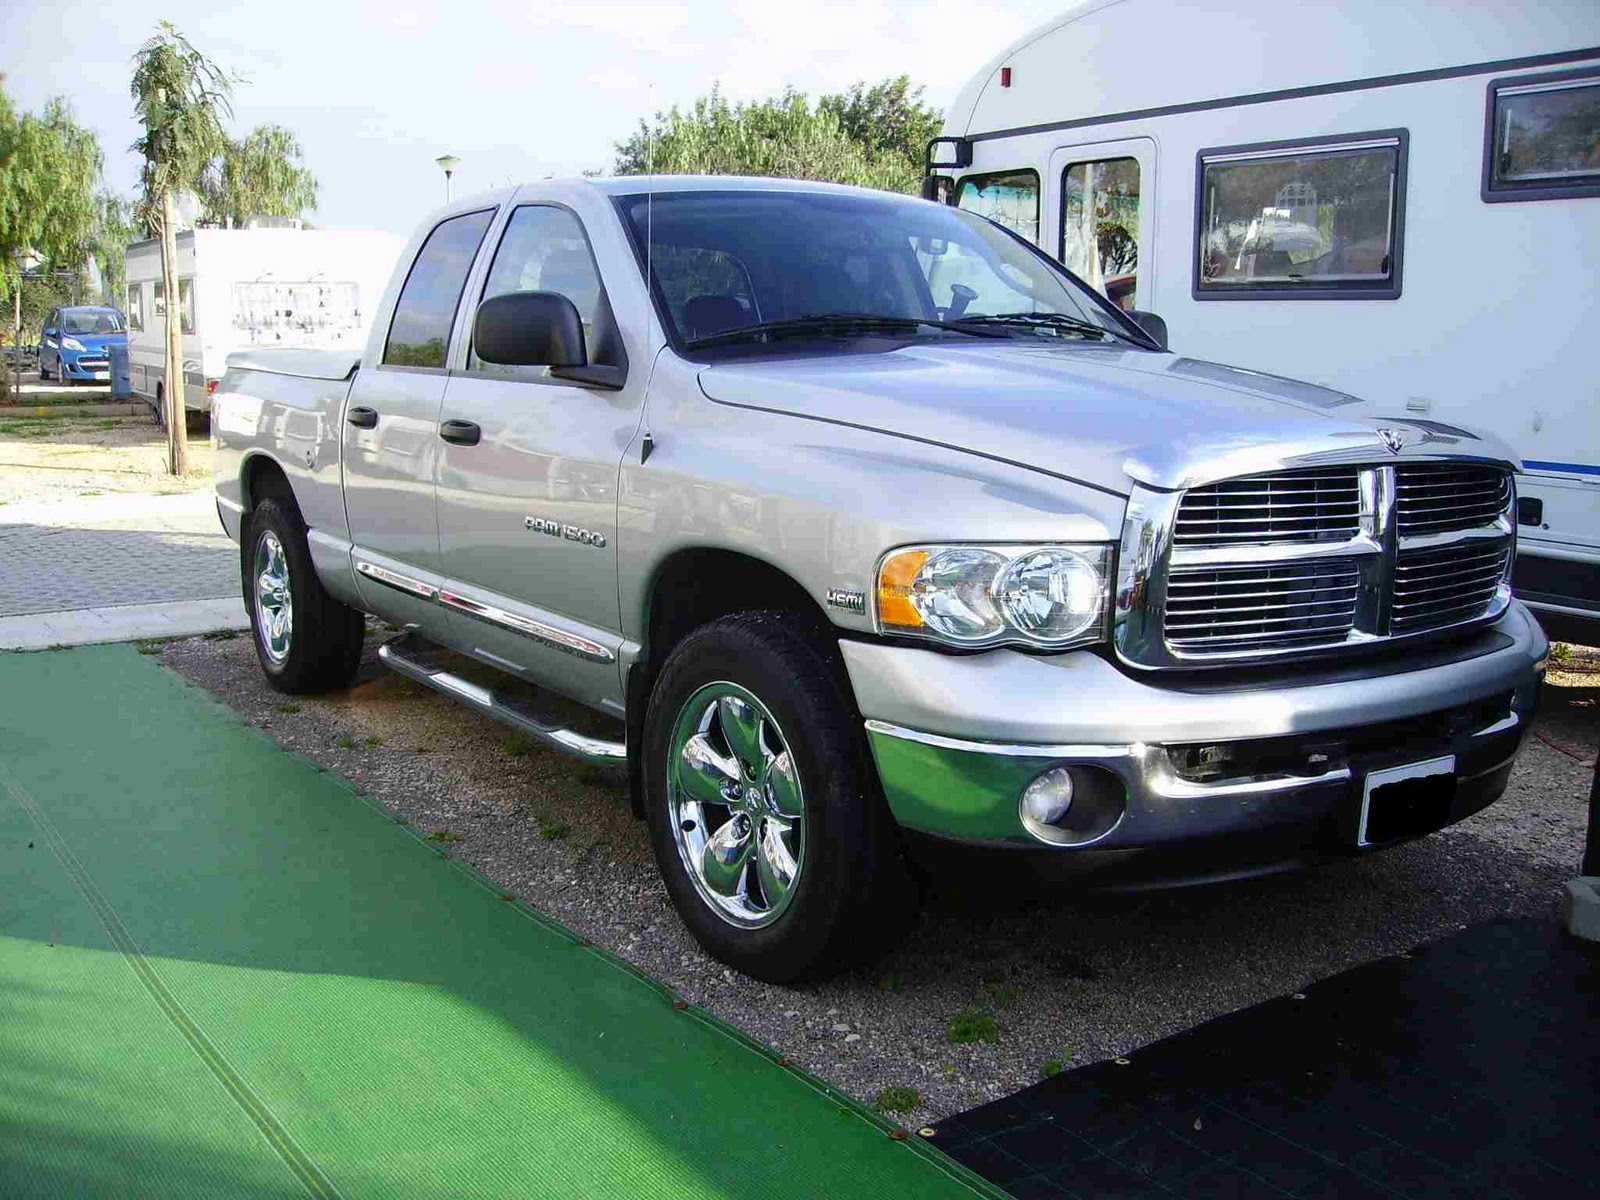 fendt platin 650 tmf 2004 dodge ram 1500 for sale for sale 2006 fendt platin 650 tmf 2004. Black Bedroom Furniture Sets. Home Design Ideas